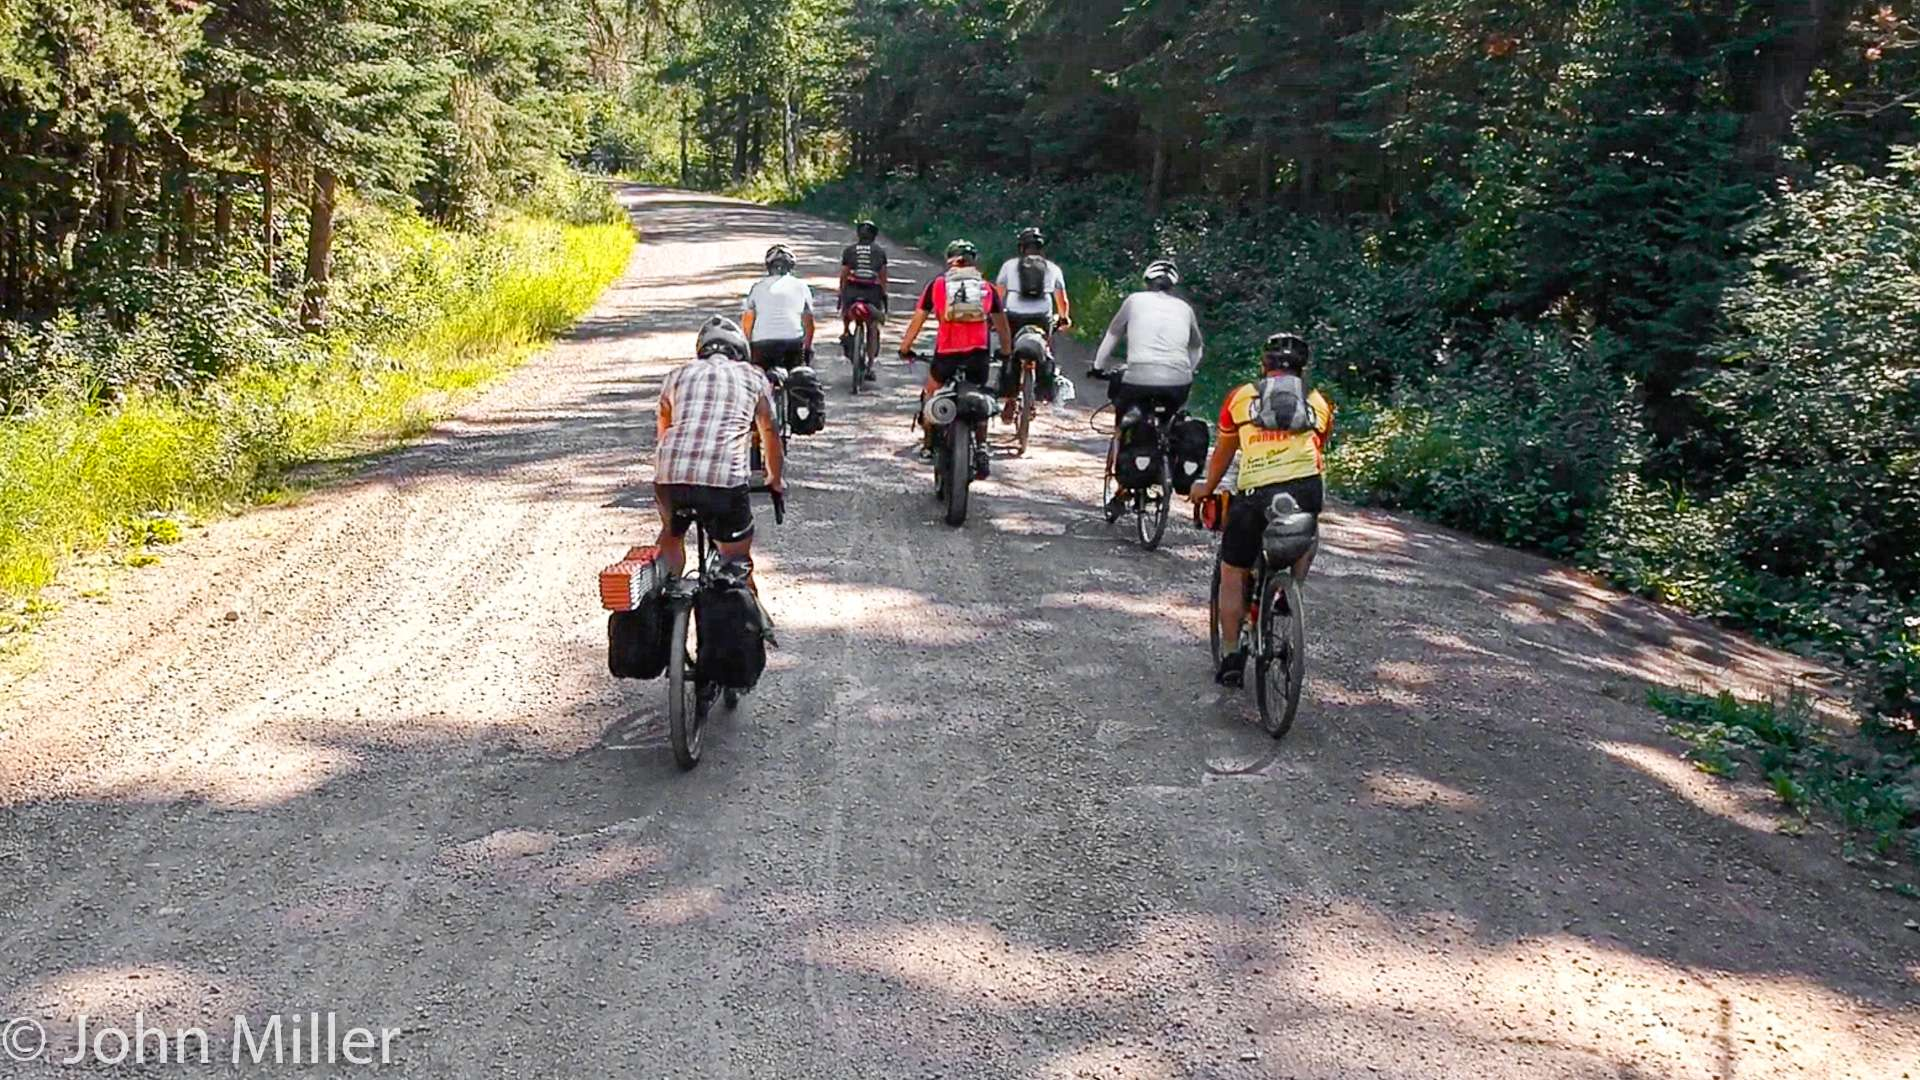 A group of seven cyclists on a gravel road